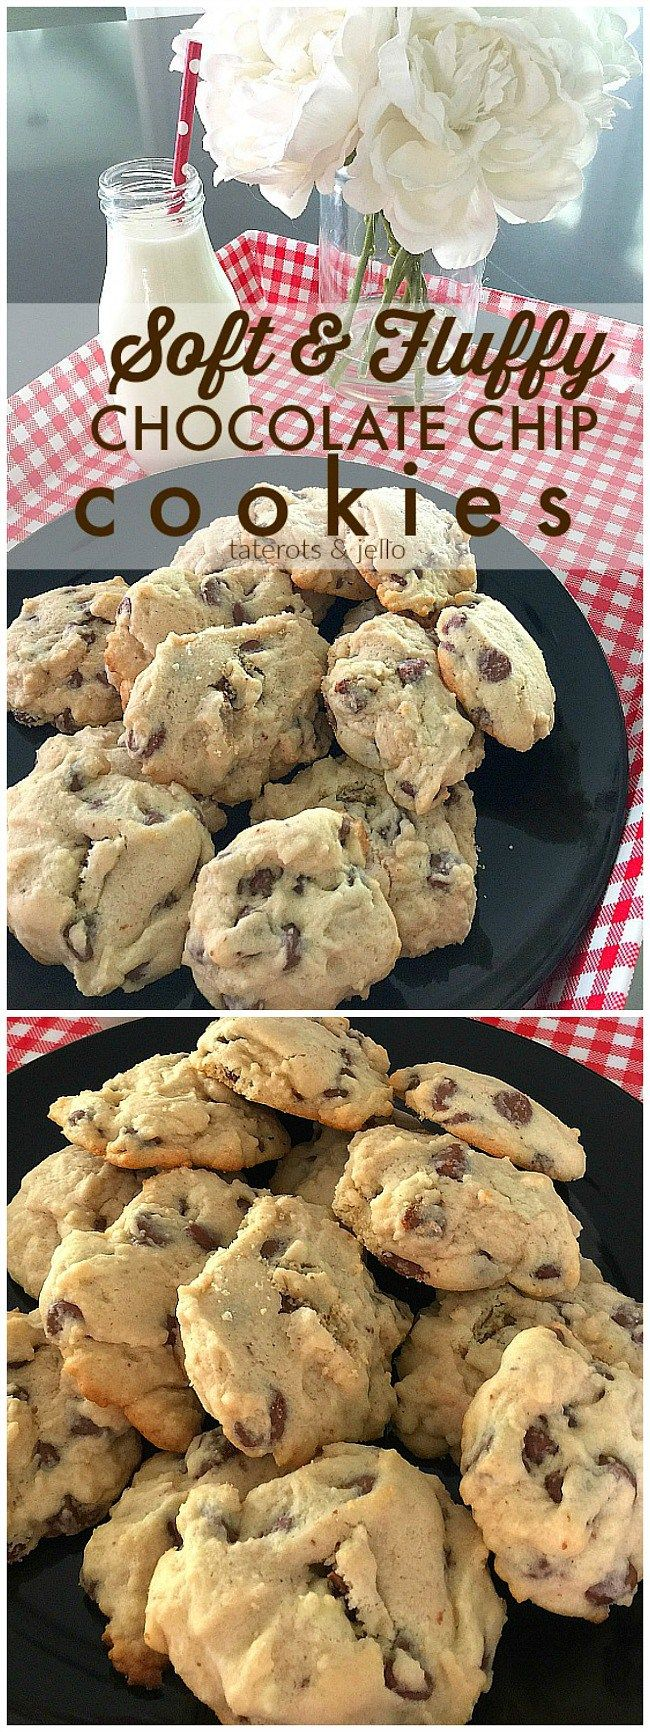 Light and Fluffy Chocolate Chip Cookies. These cookies are light and airy and filled with chocolate chips. They require no brown sugar so they are not as sweet as a traditional chocolate chip cookie, with a firm outside and soft and chewy inside.